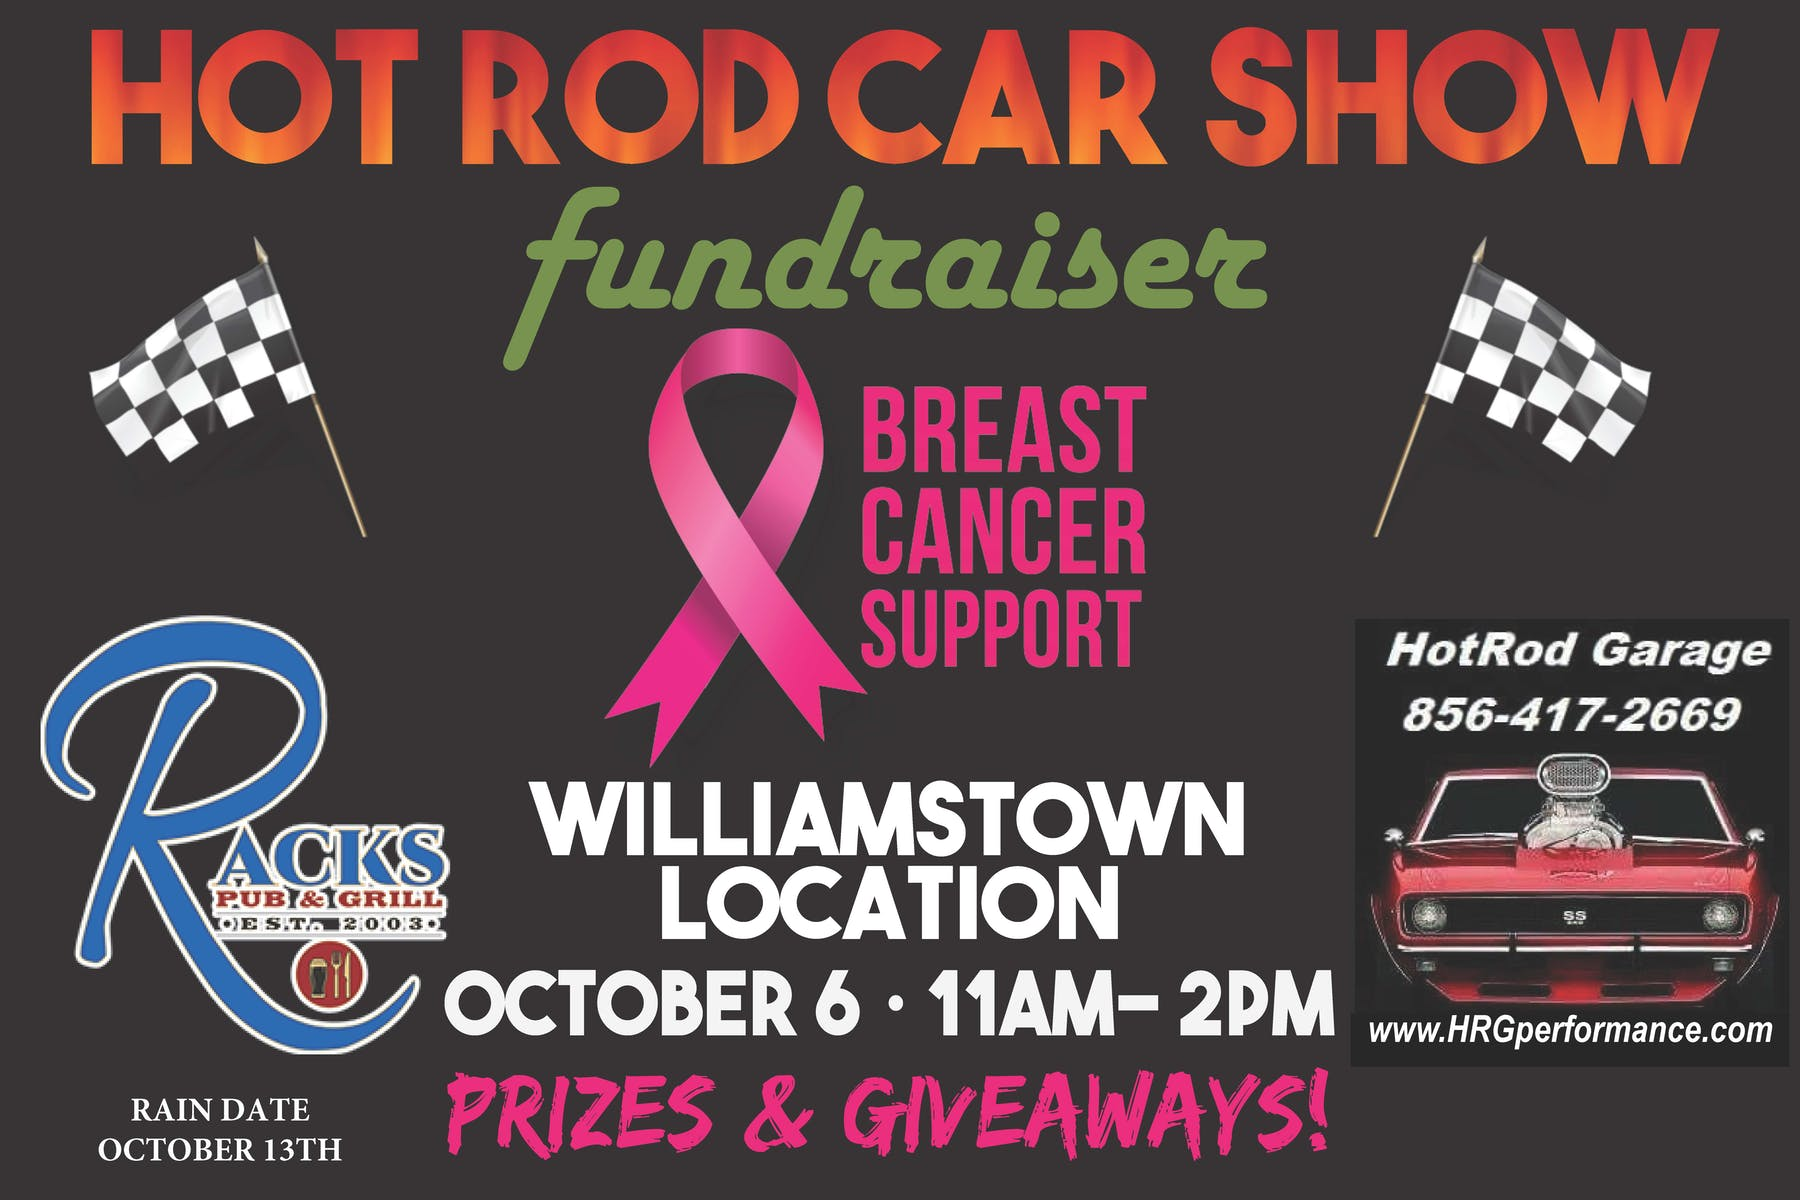 Car Shows Racks Pub Grill - Car show giveaways